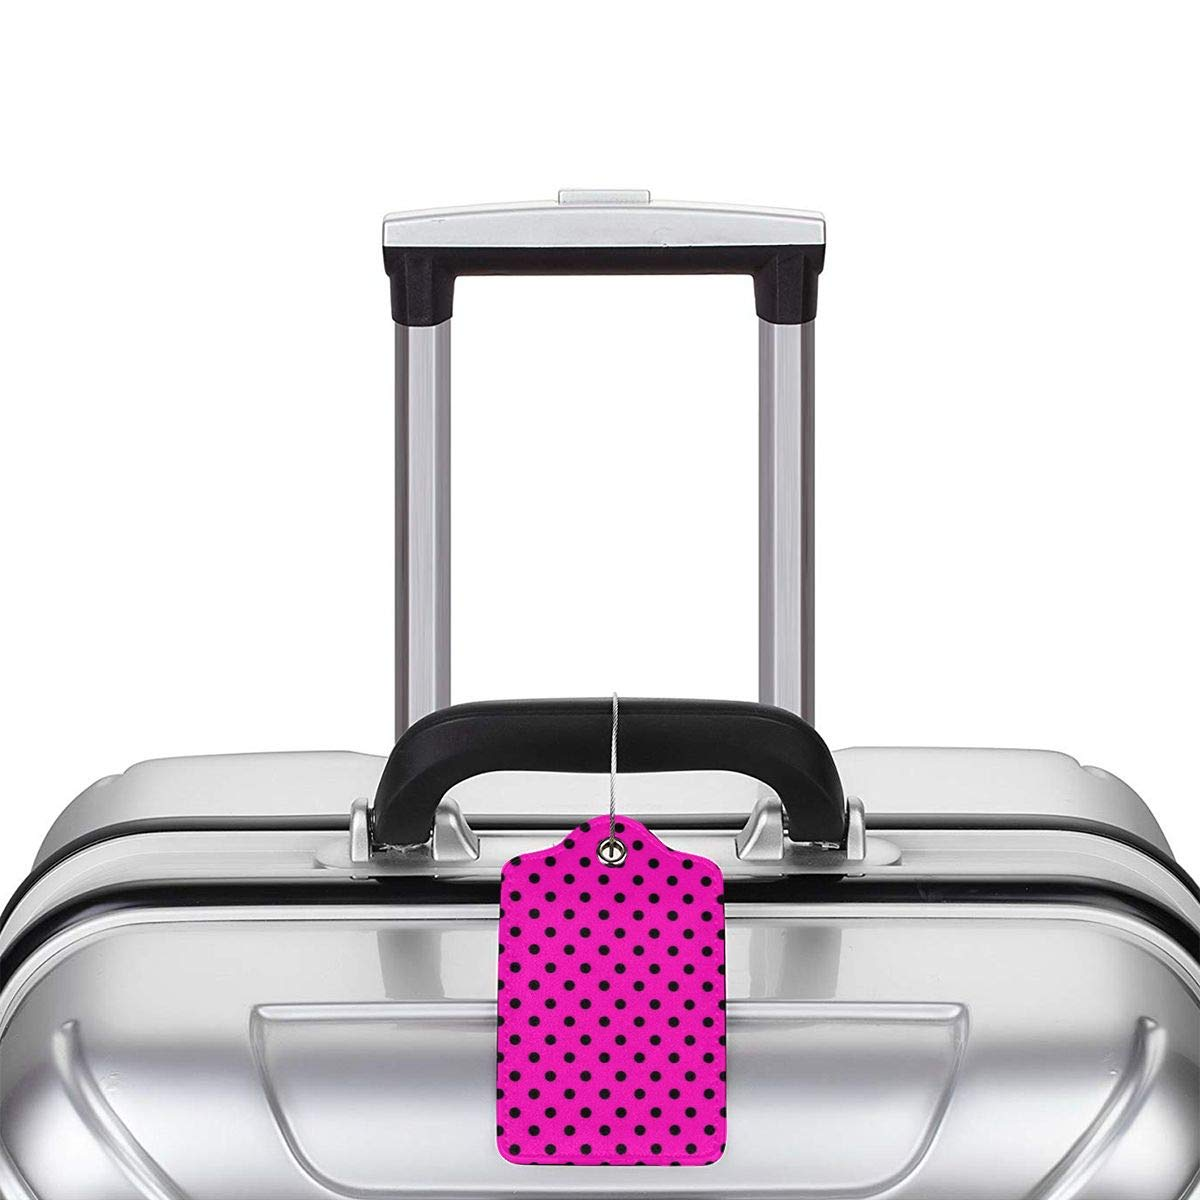 Polkadot-Pink Leather Luggage Tags Personalized Extra Address Cards With Adjustable Strap